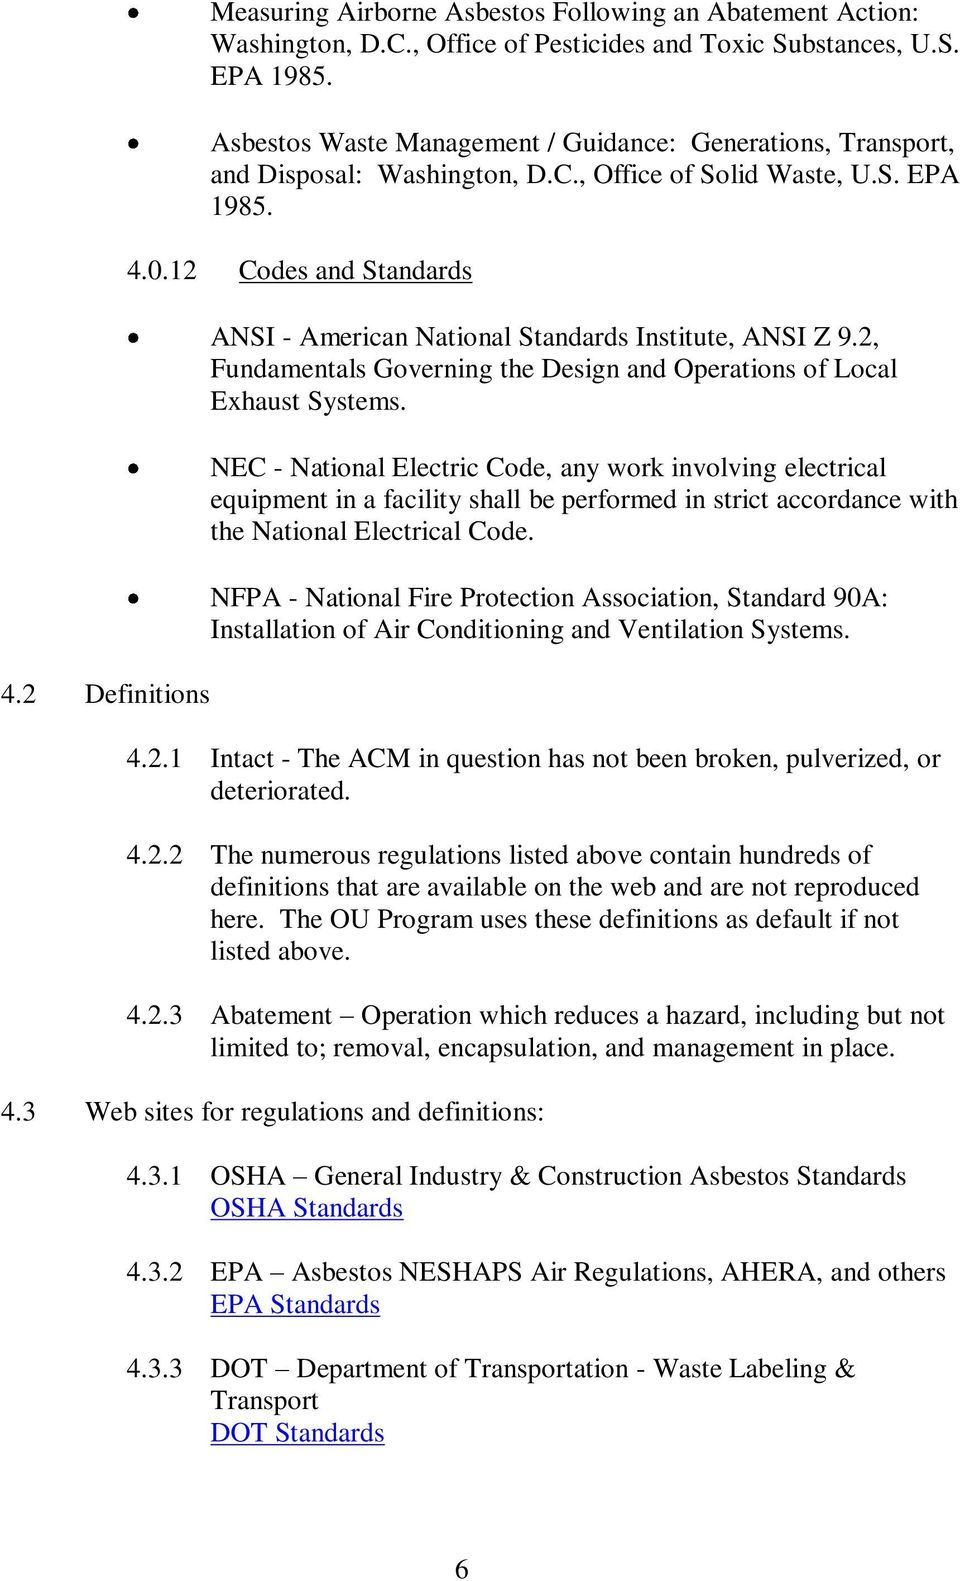 12 Codes and Standards ANSI - American National Standards Institute, ANSI Z 9.2, Fundamentals Governing the Design and Operations of Local Exhaust Systems.